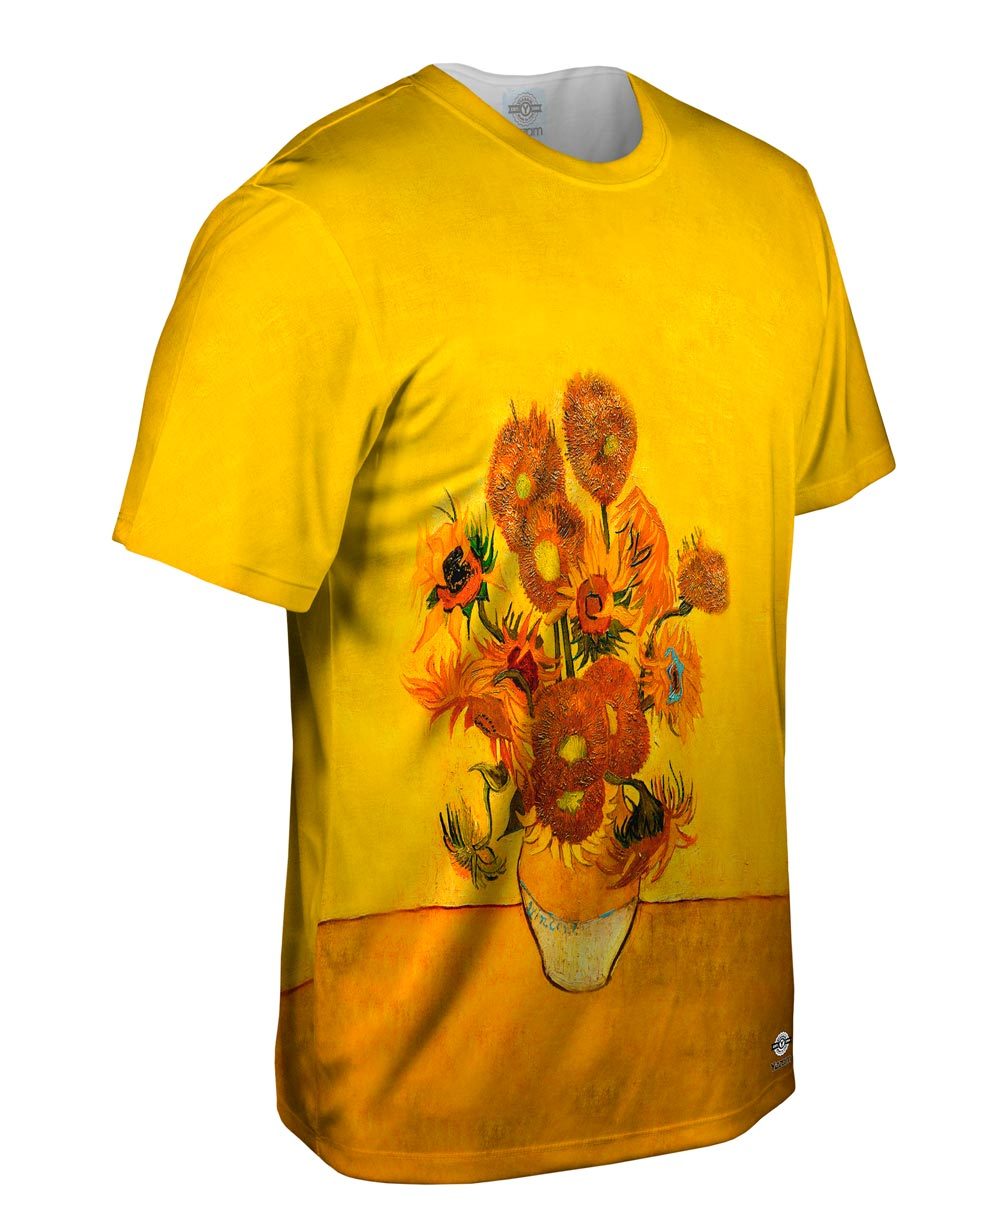 Yizzam van gogh sunflowers london version new men for Best website to sell shirts